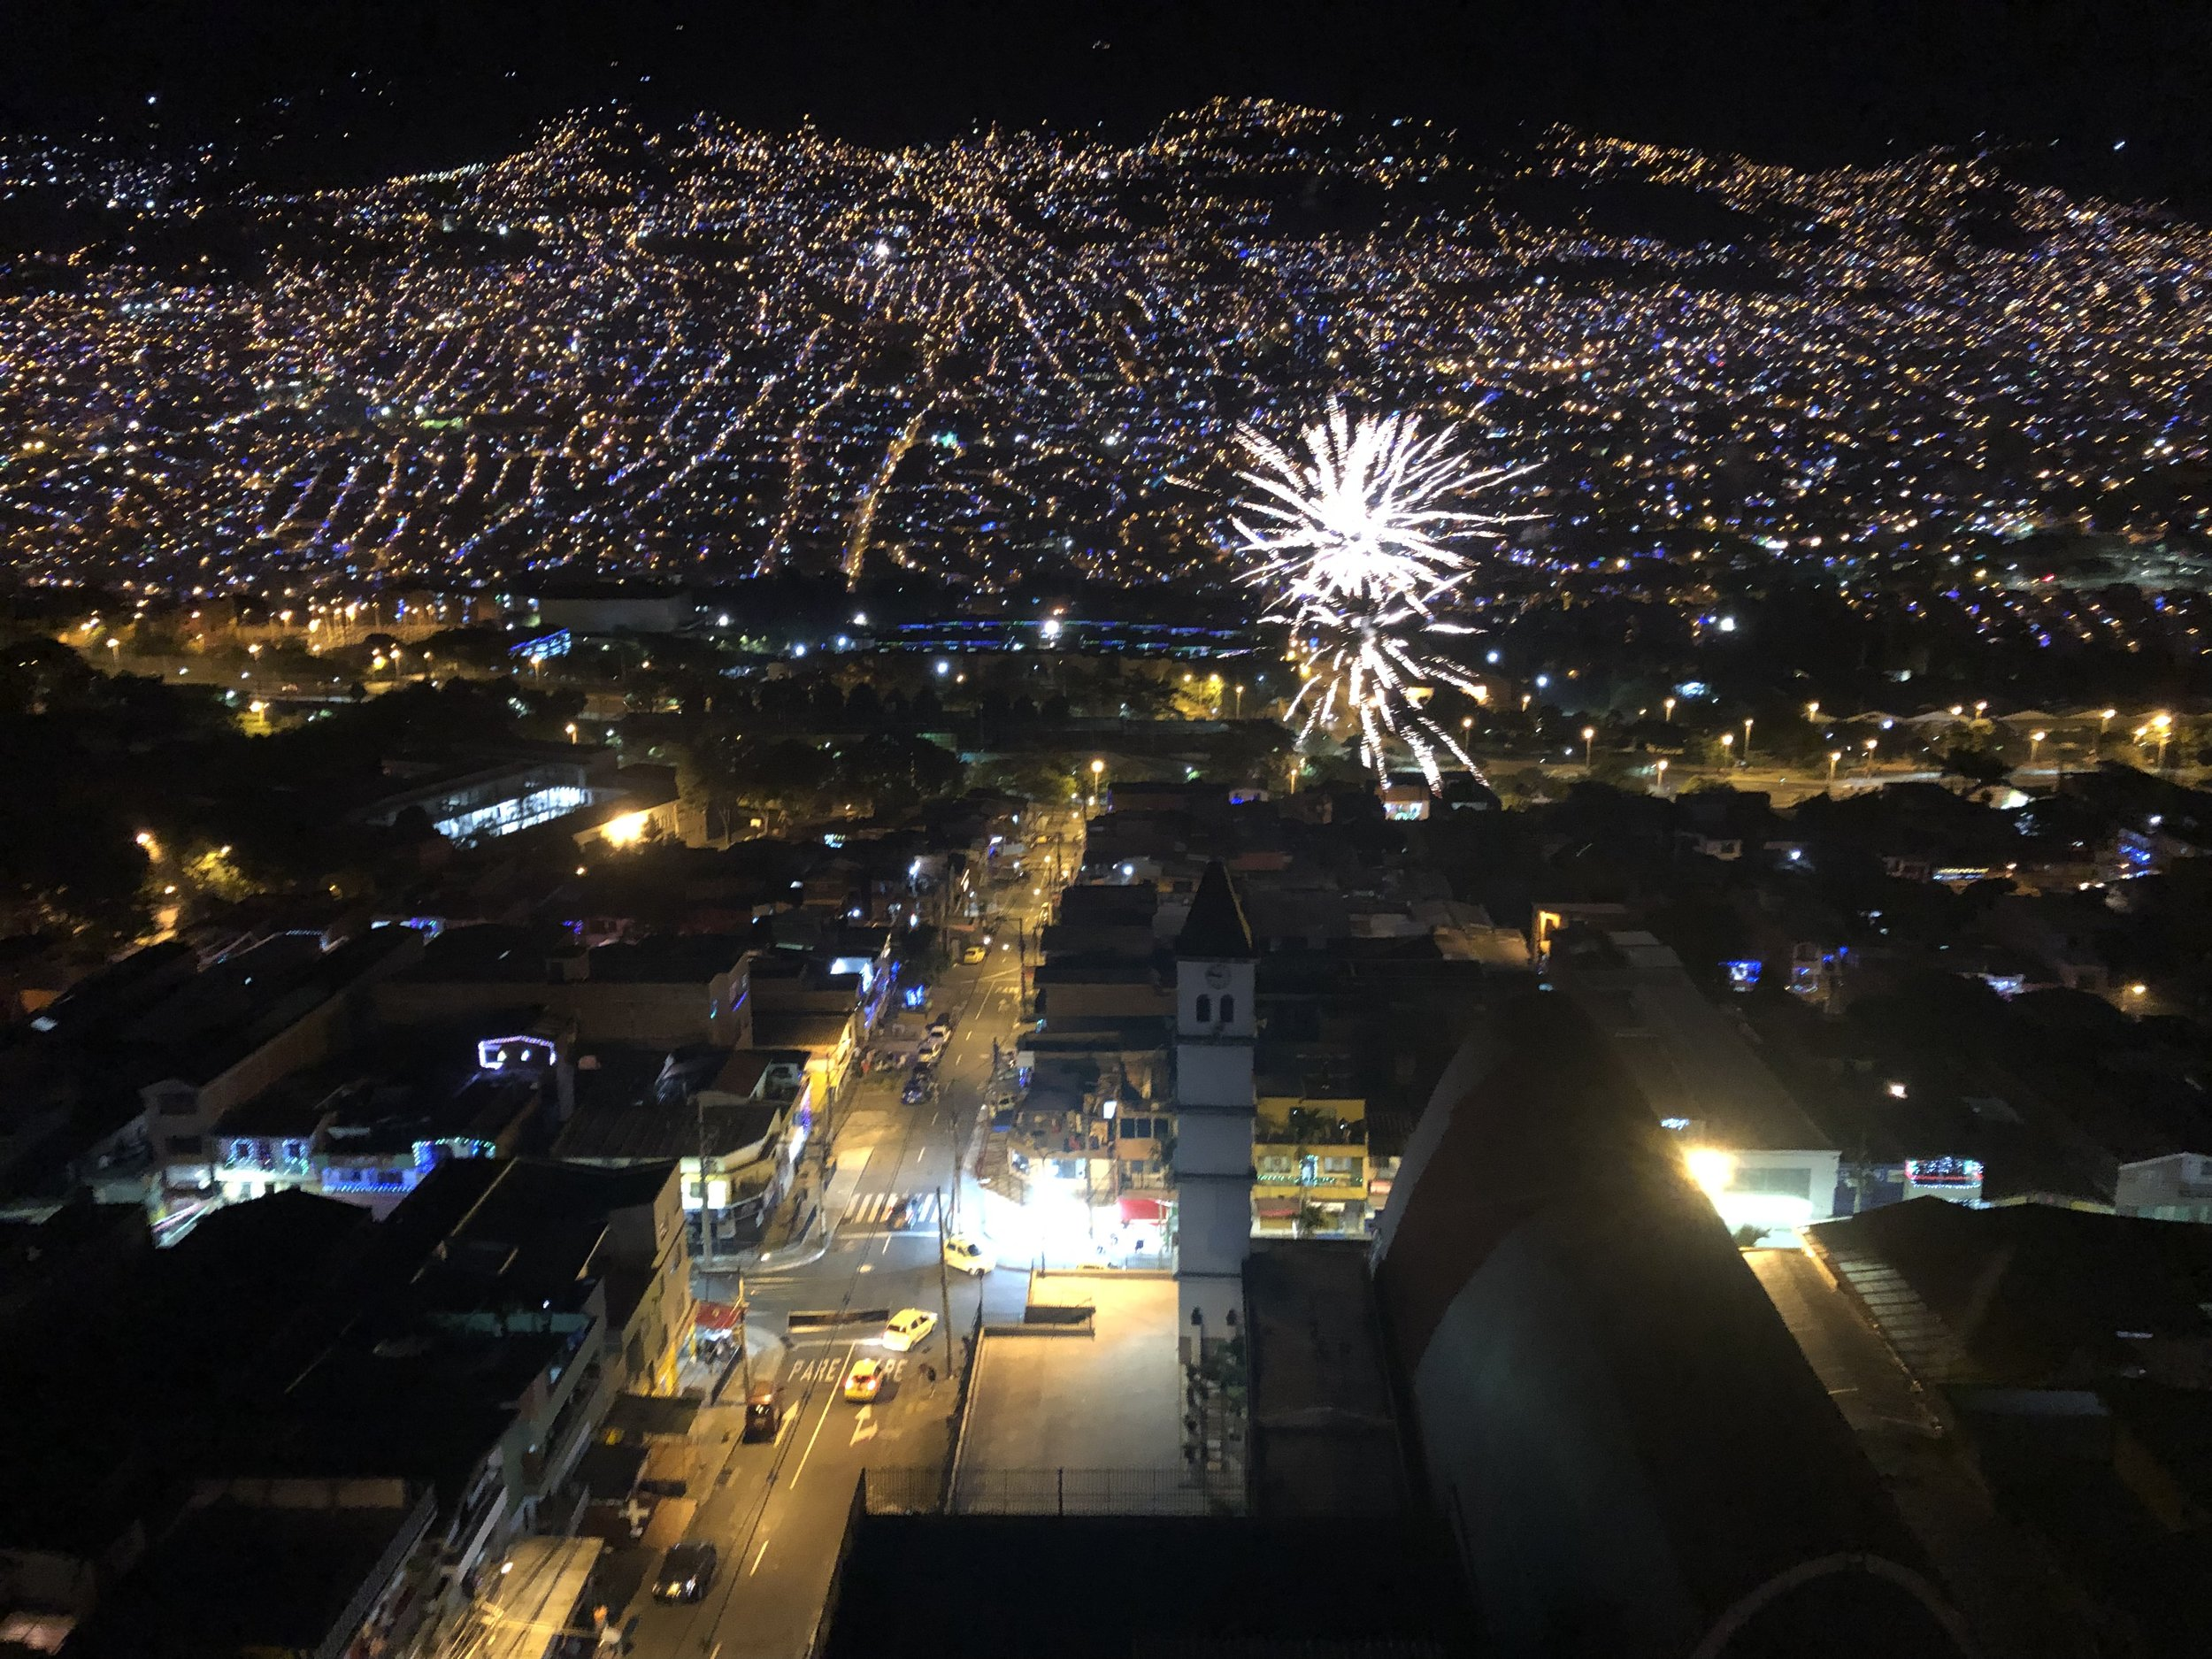 Happy new year to all the new beginnings I'm now in Colombia. It's not dangerous at all anymore, there use to be people getting killed on the street. Now every one is happy because the drug lord Pablo Escobar was gone for good.